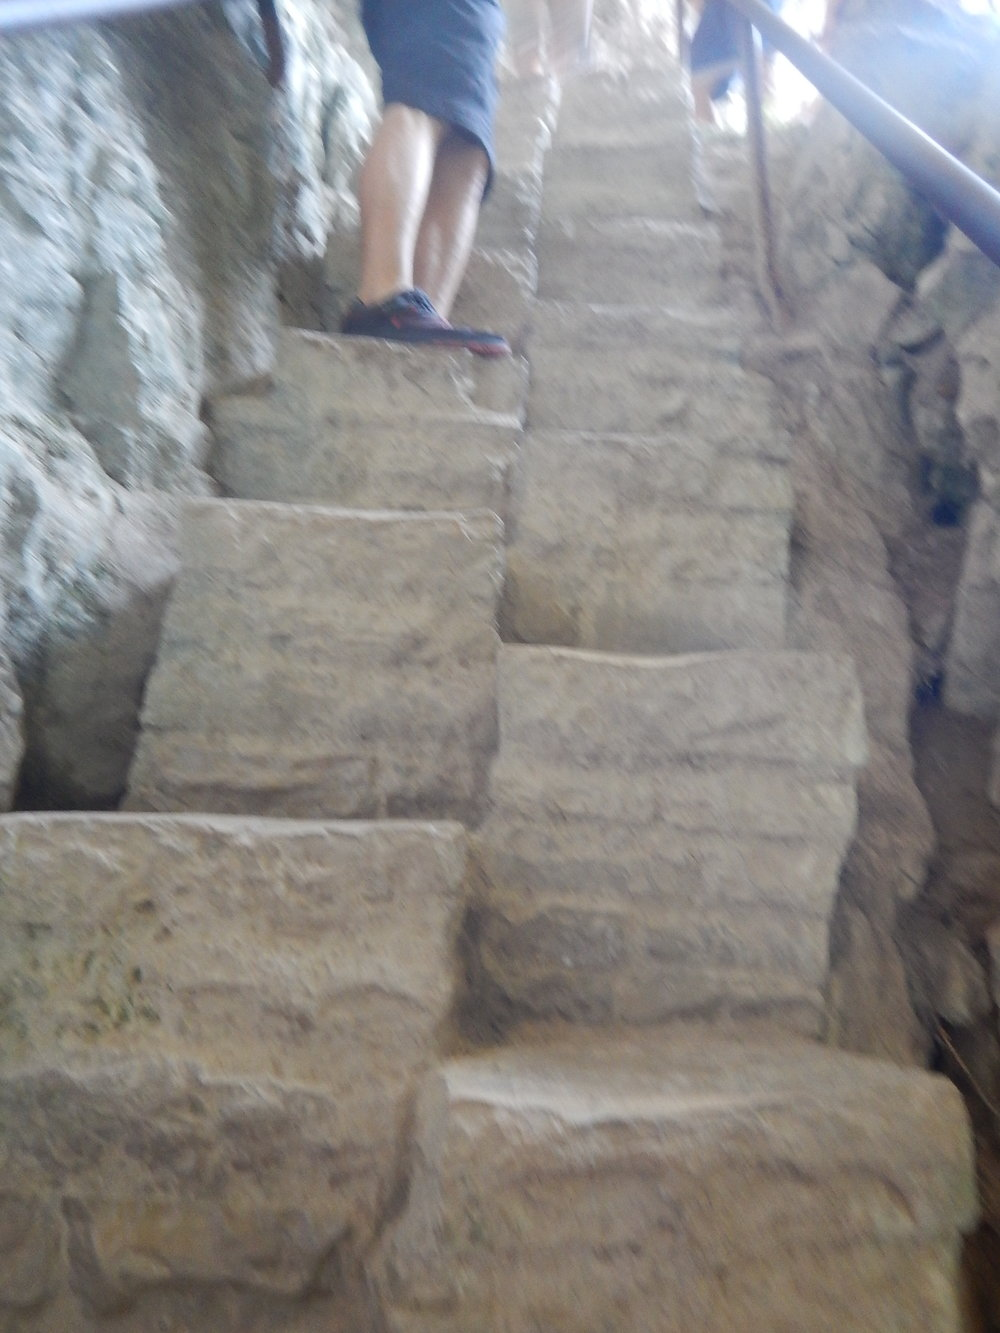 Alternating steps up into one of the caves.